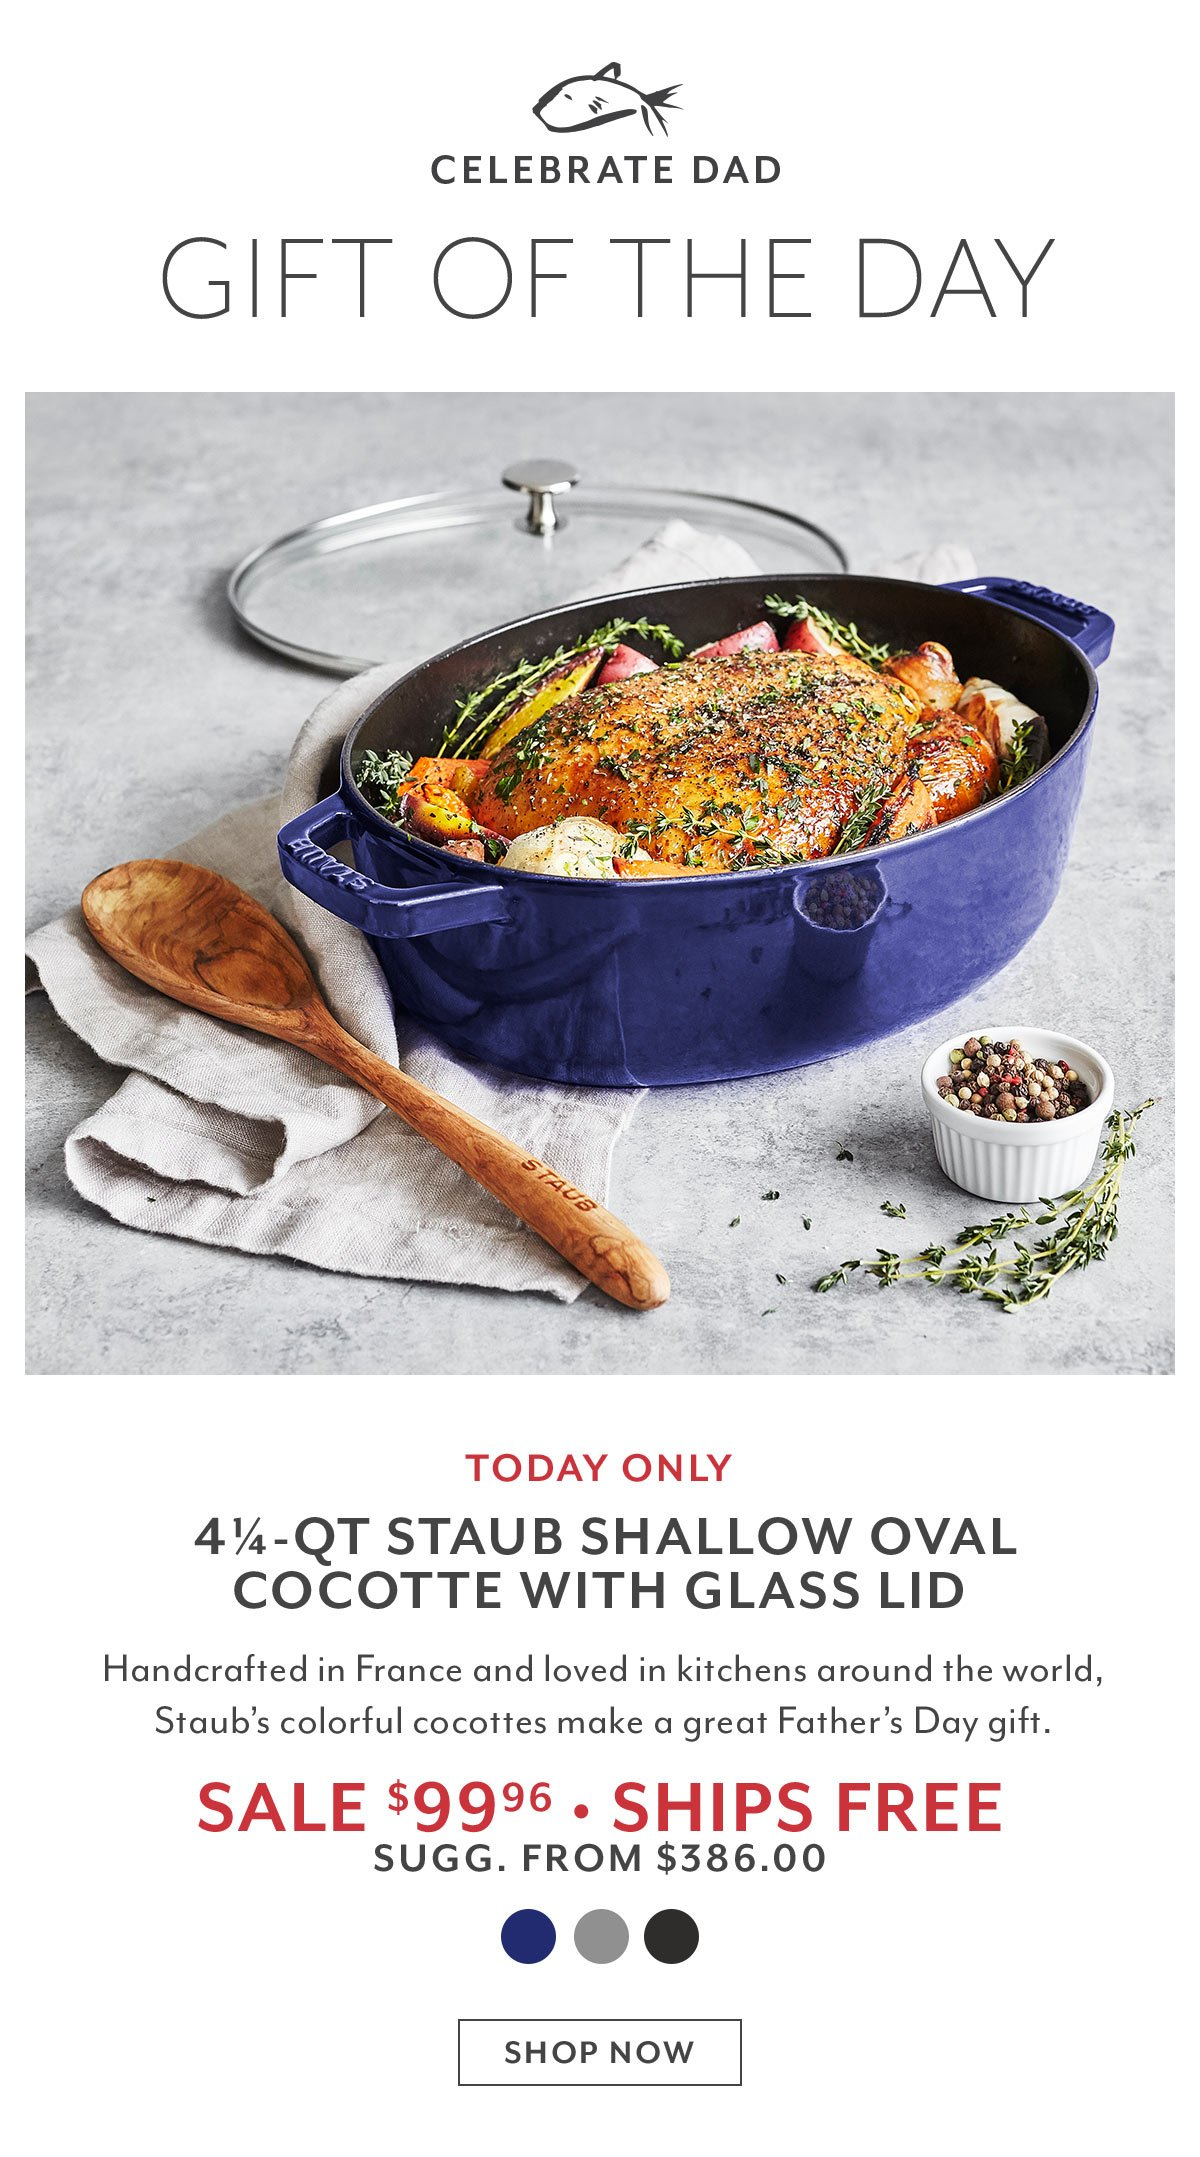 Gift of the Day: Staub Shallow Oval Cocotte